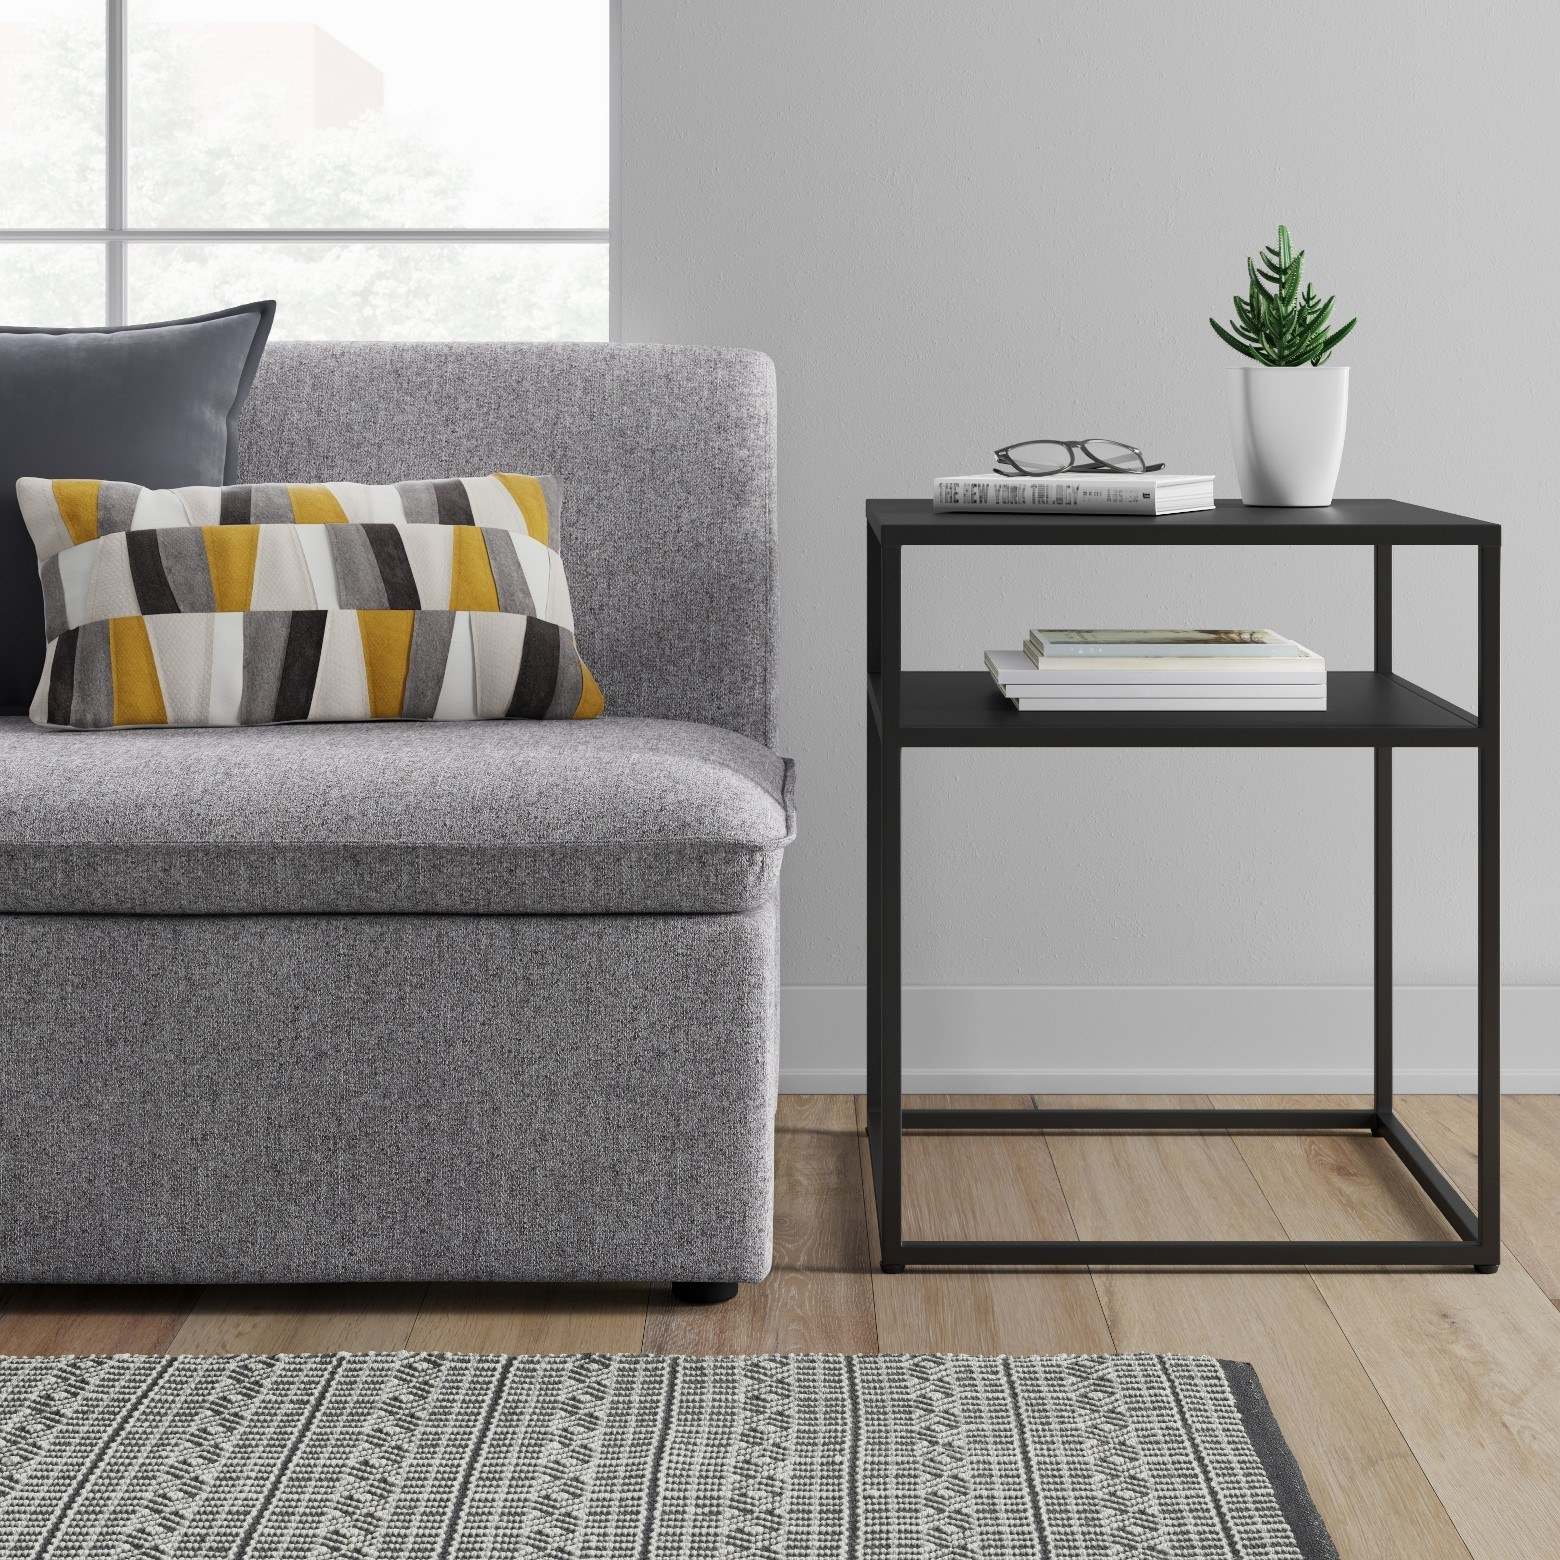 Target's New Home Line Is Just So Fucking Perfect